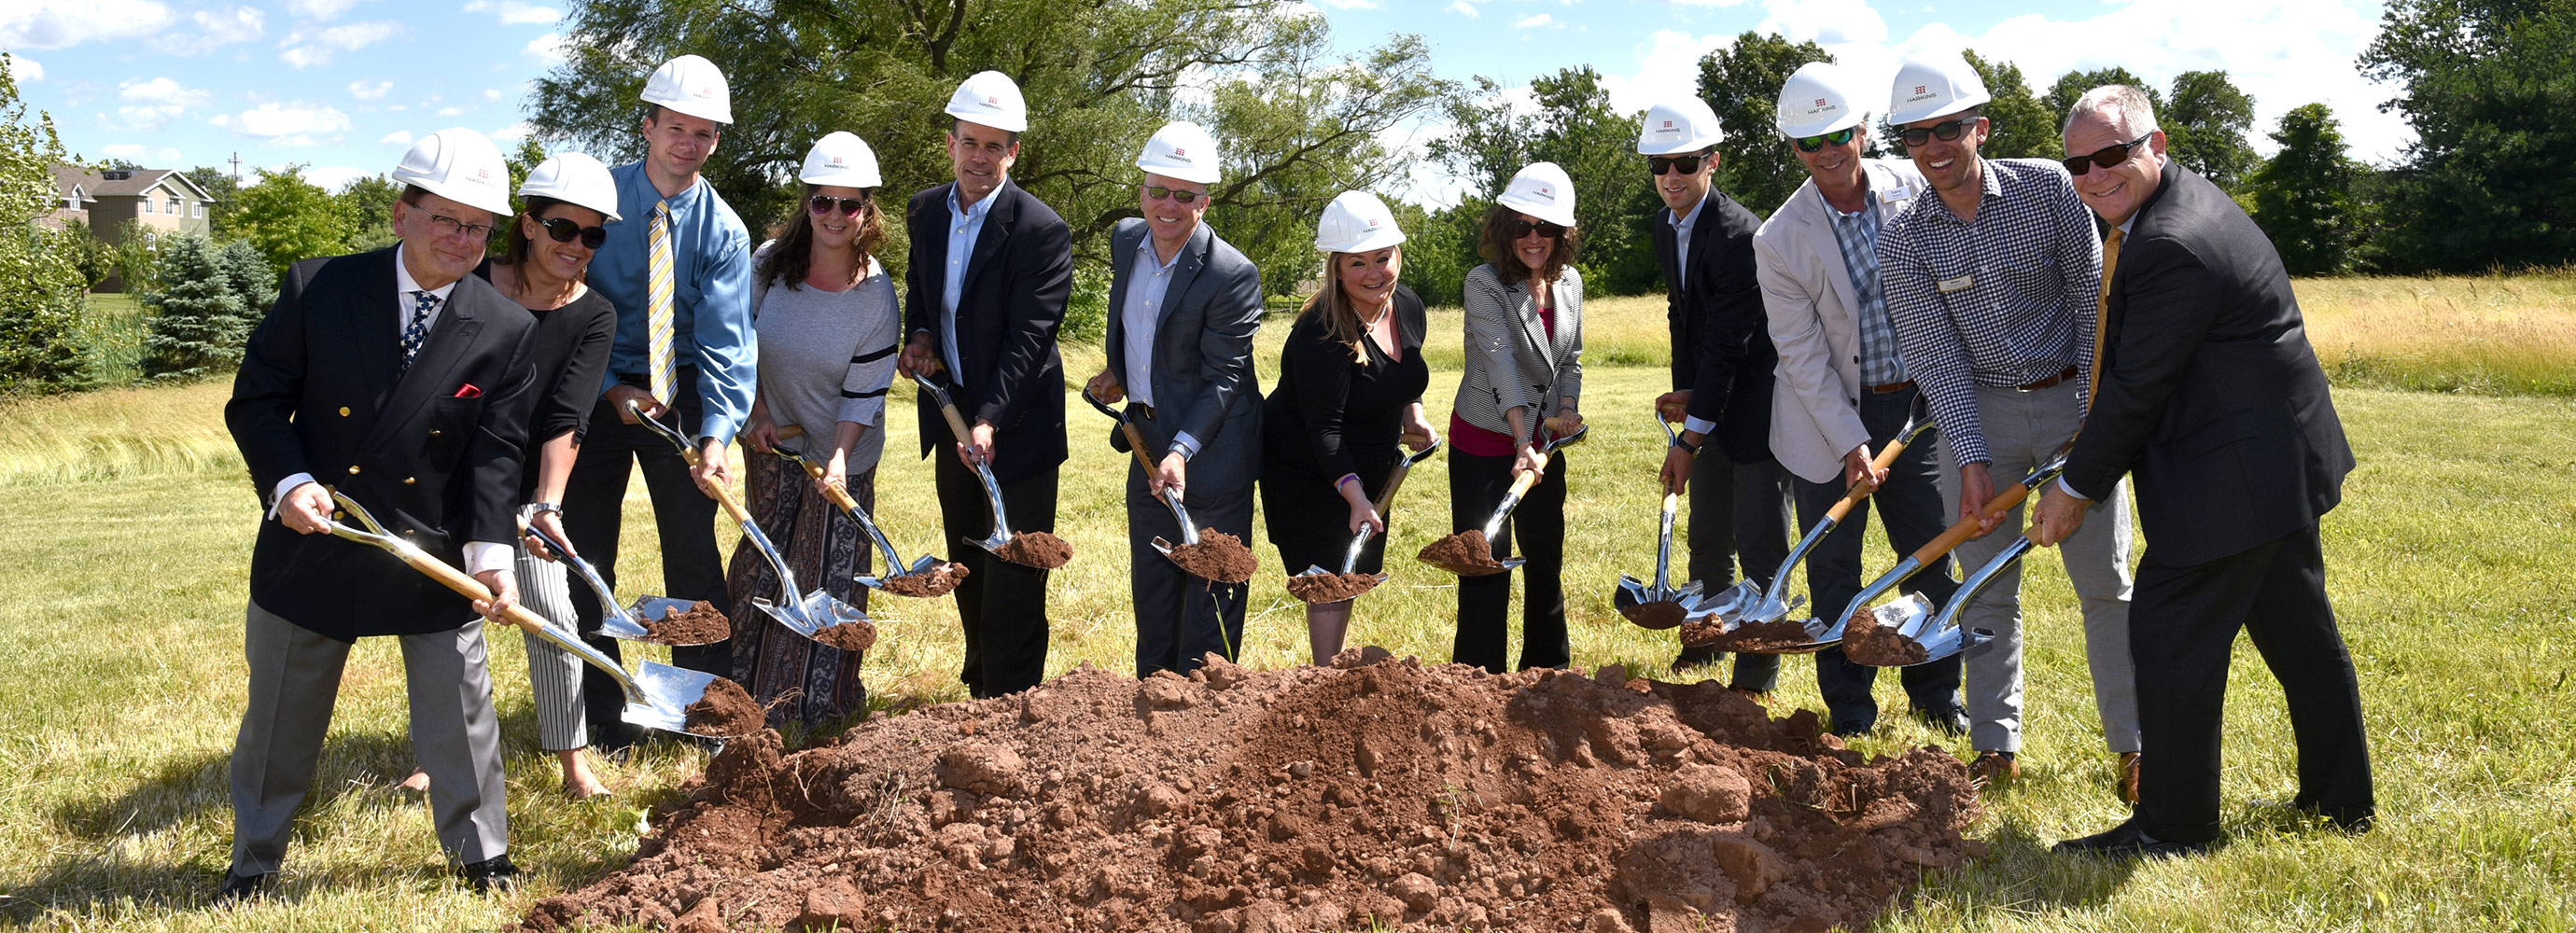 Construction team breaks ground on project in PA